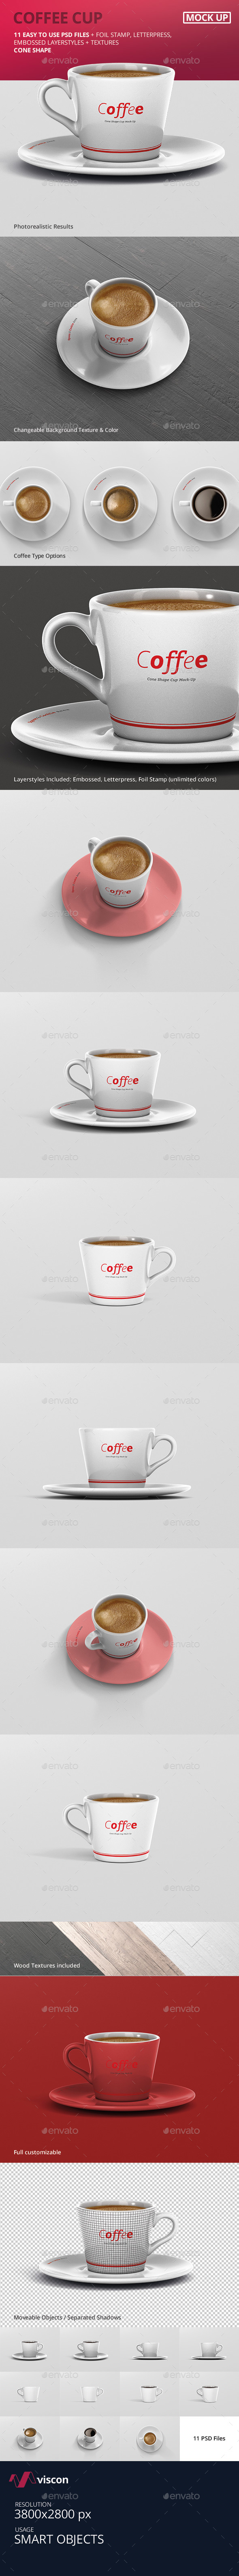 Coffee Cup Mockup - Cone Shape - Logo Product Mock-Ups